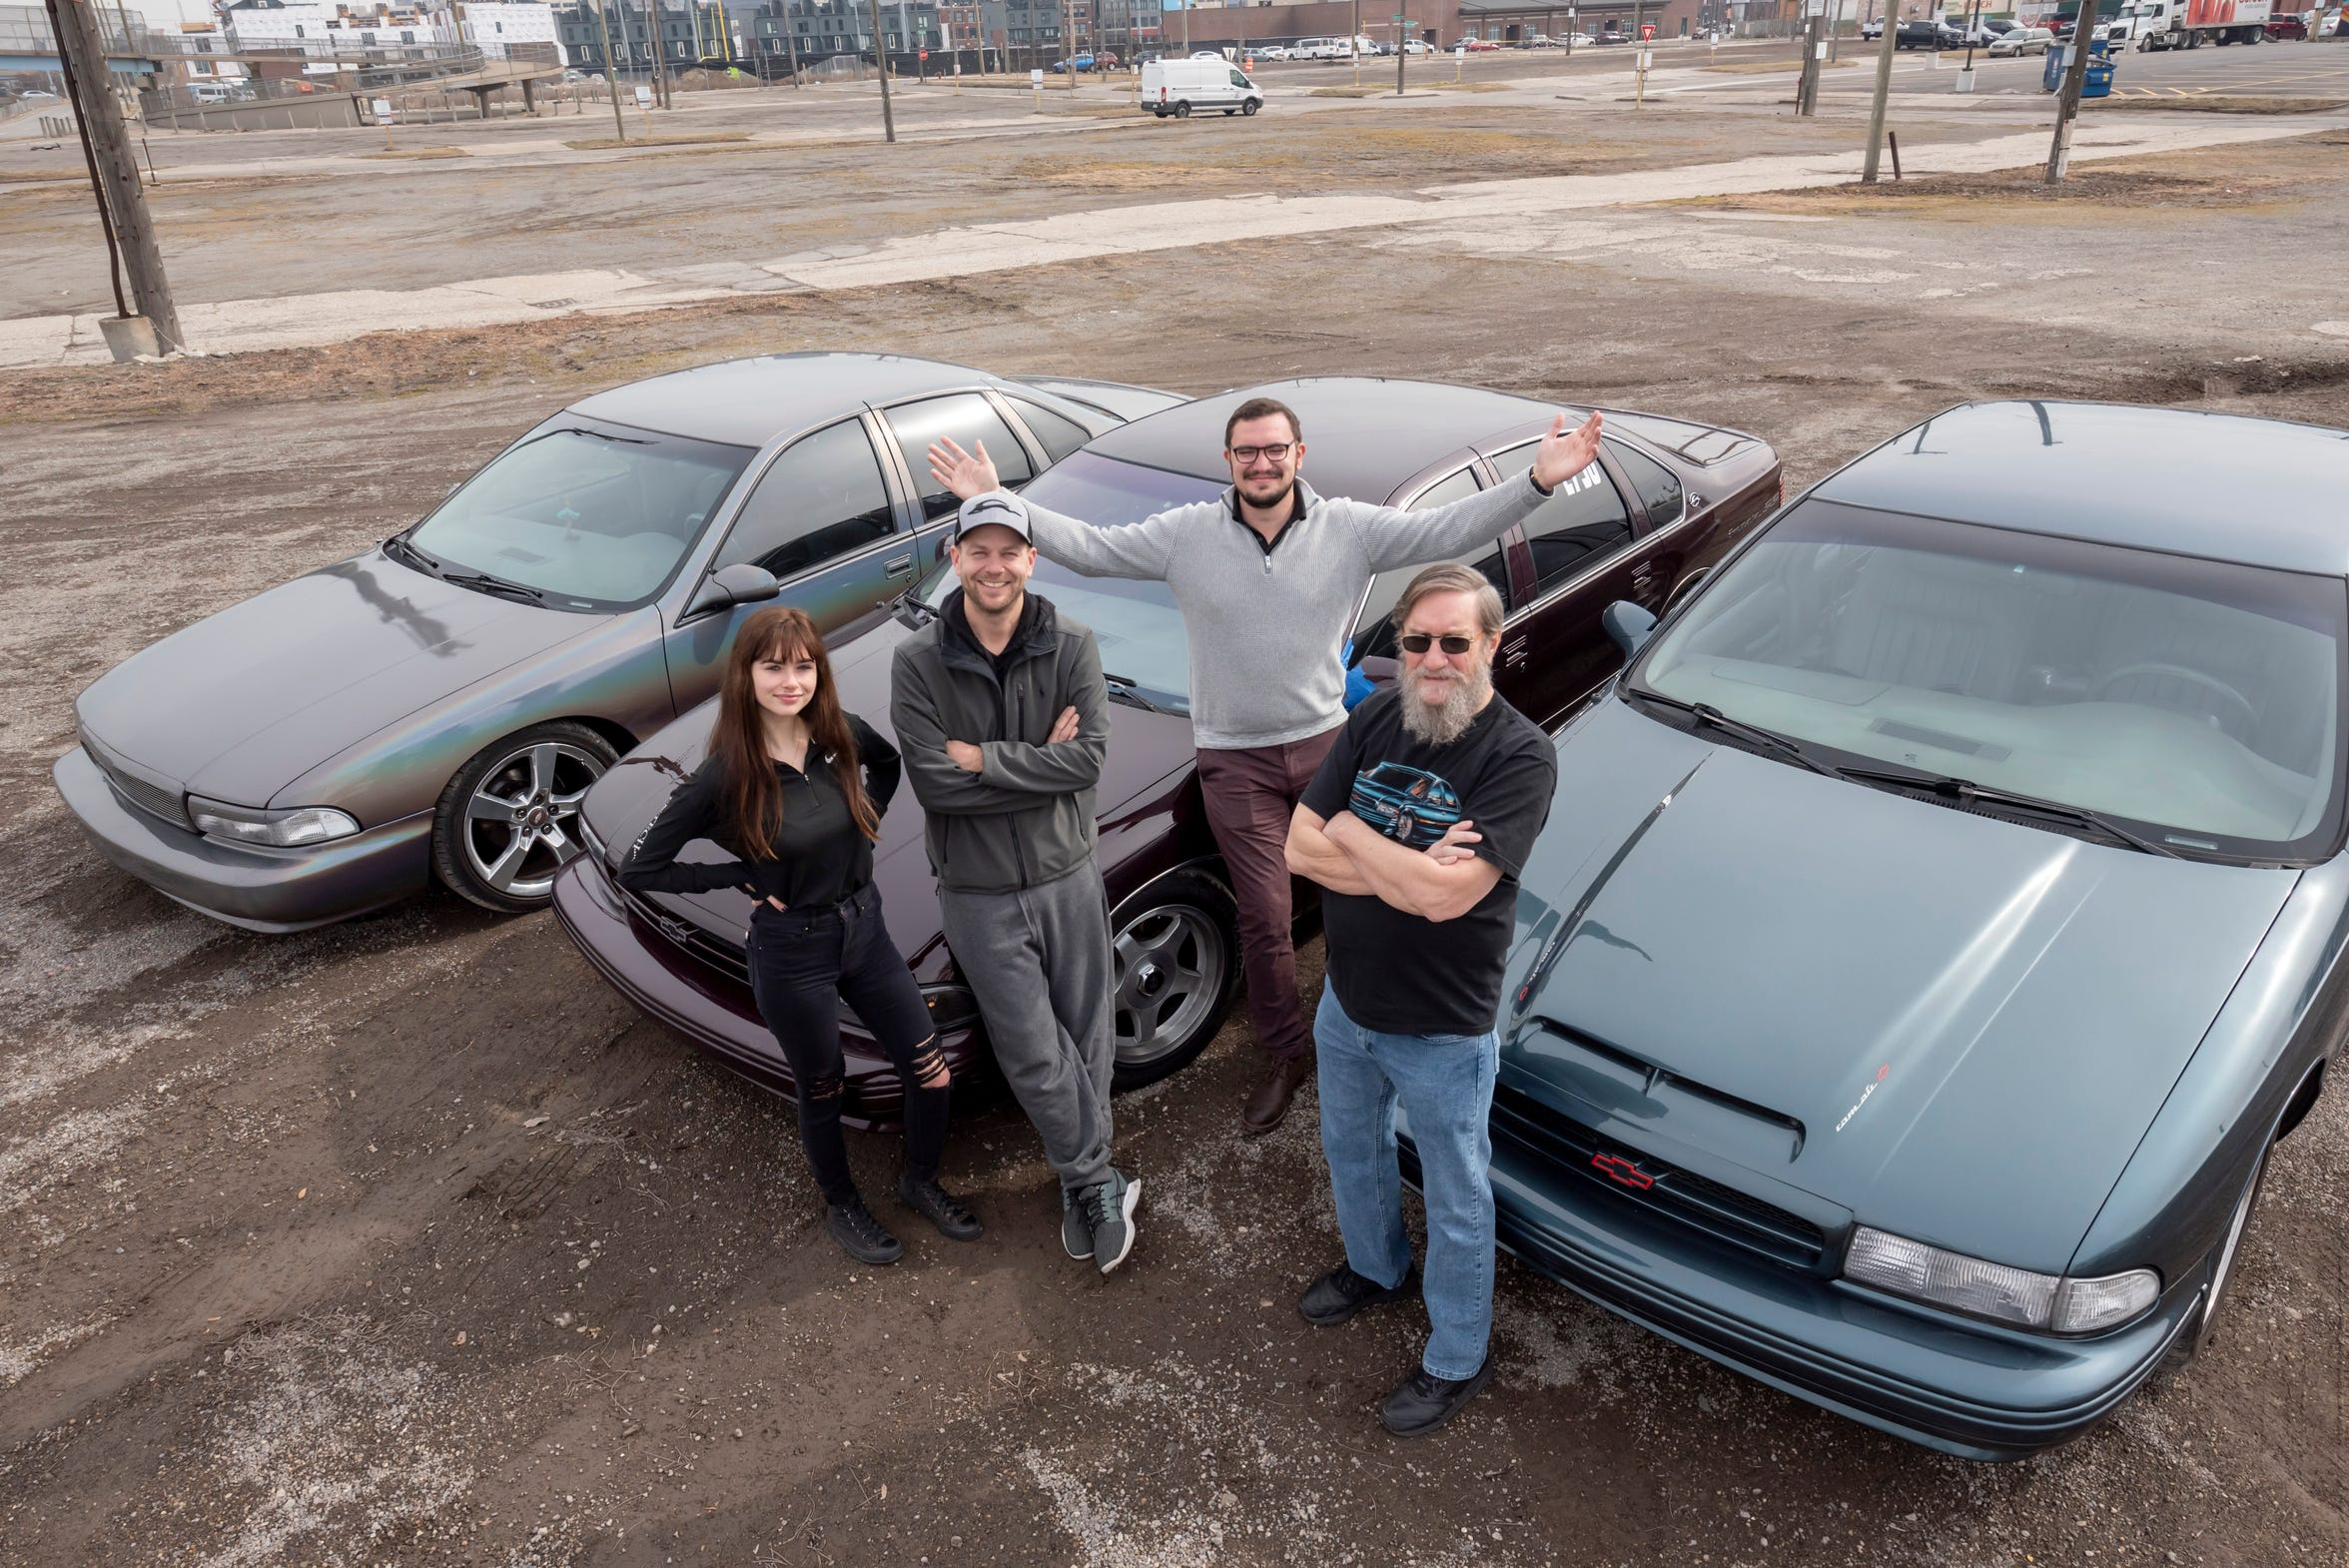 Hunter Gersch, from left, her father Daniel Gersch, Glenn Waineo, and Mitchell Bergslien, stand in front of examples of the 1996 Chevy Impala SS.